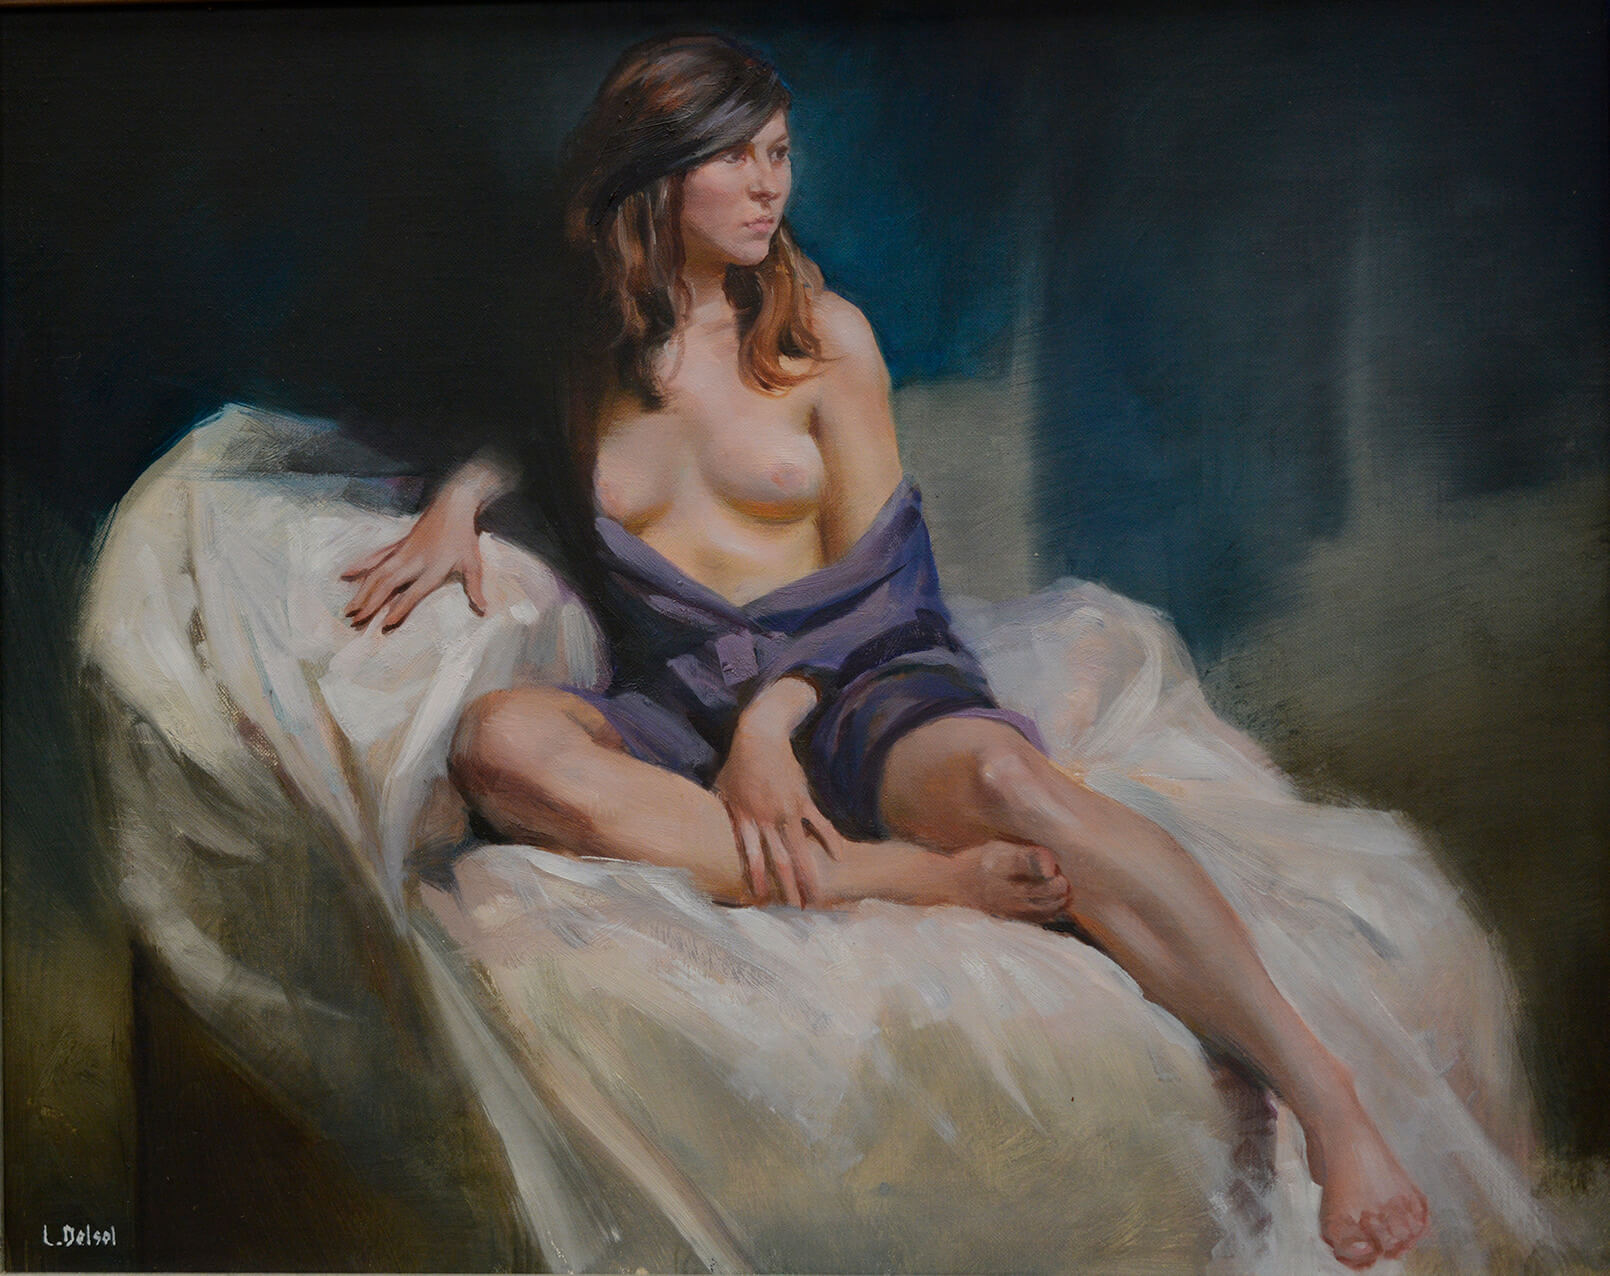 Realistic figurative oil painting of woman sitting on draped white fabric in purple robe with breasts exposed gazing to the right of us